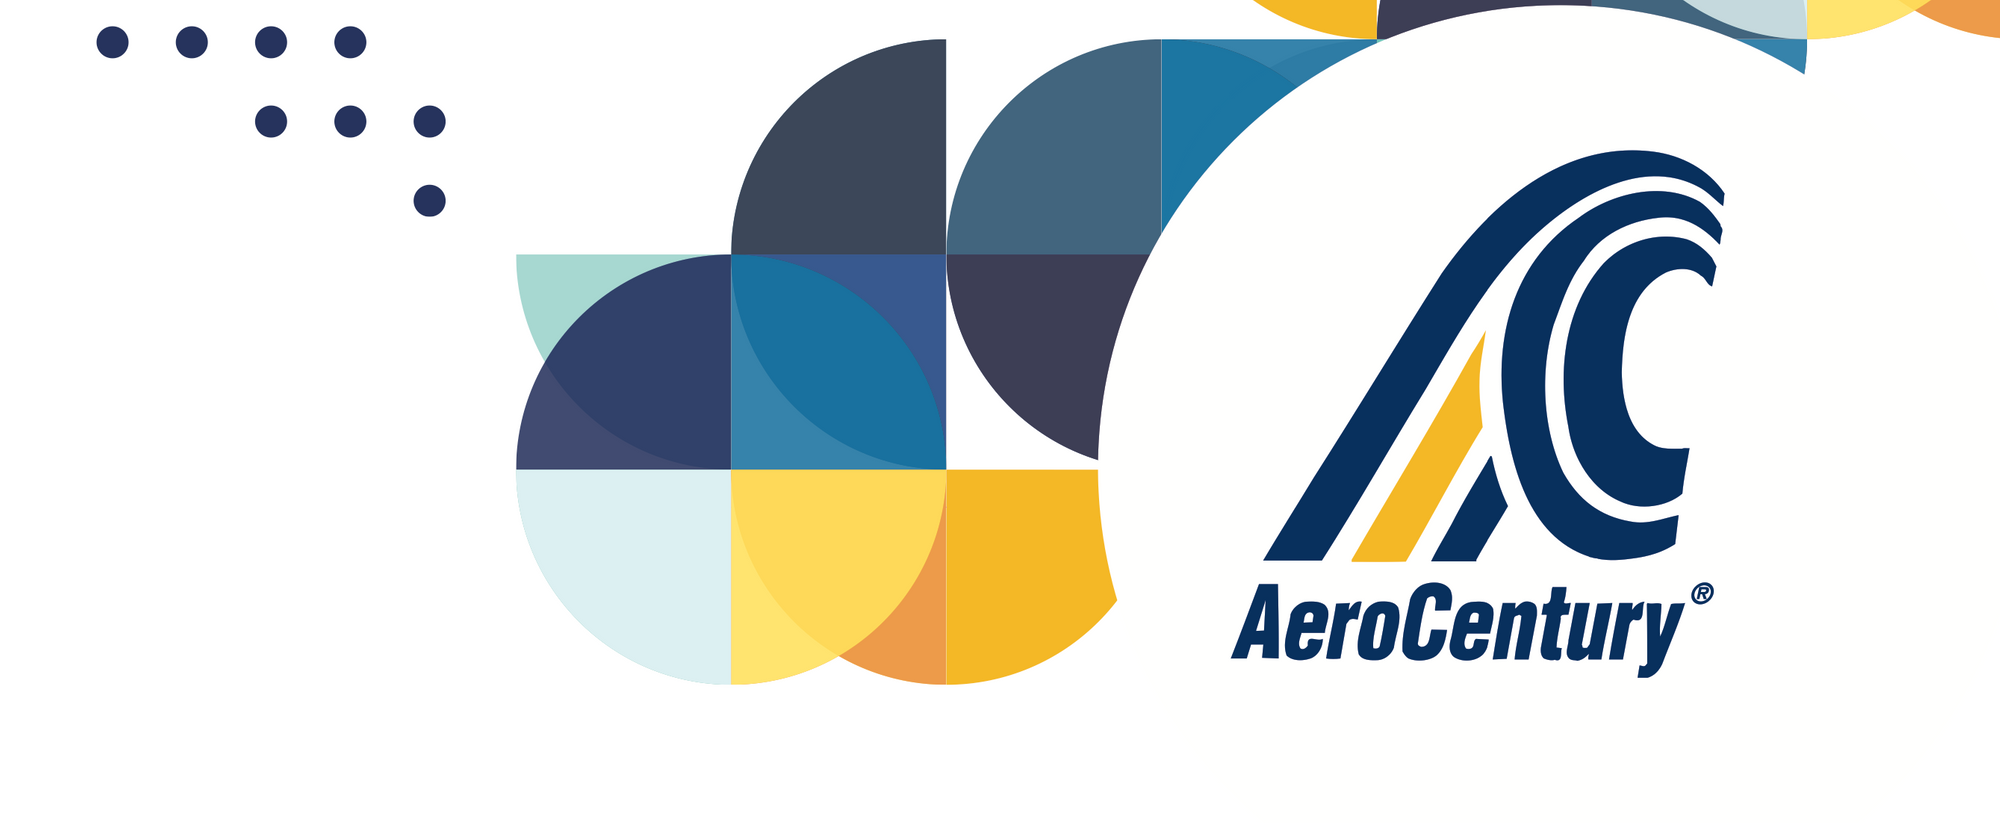 AeroCentury Corp. Announces Update Regarding Loan Facility